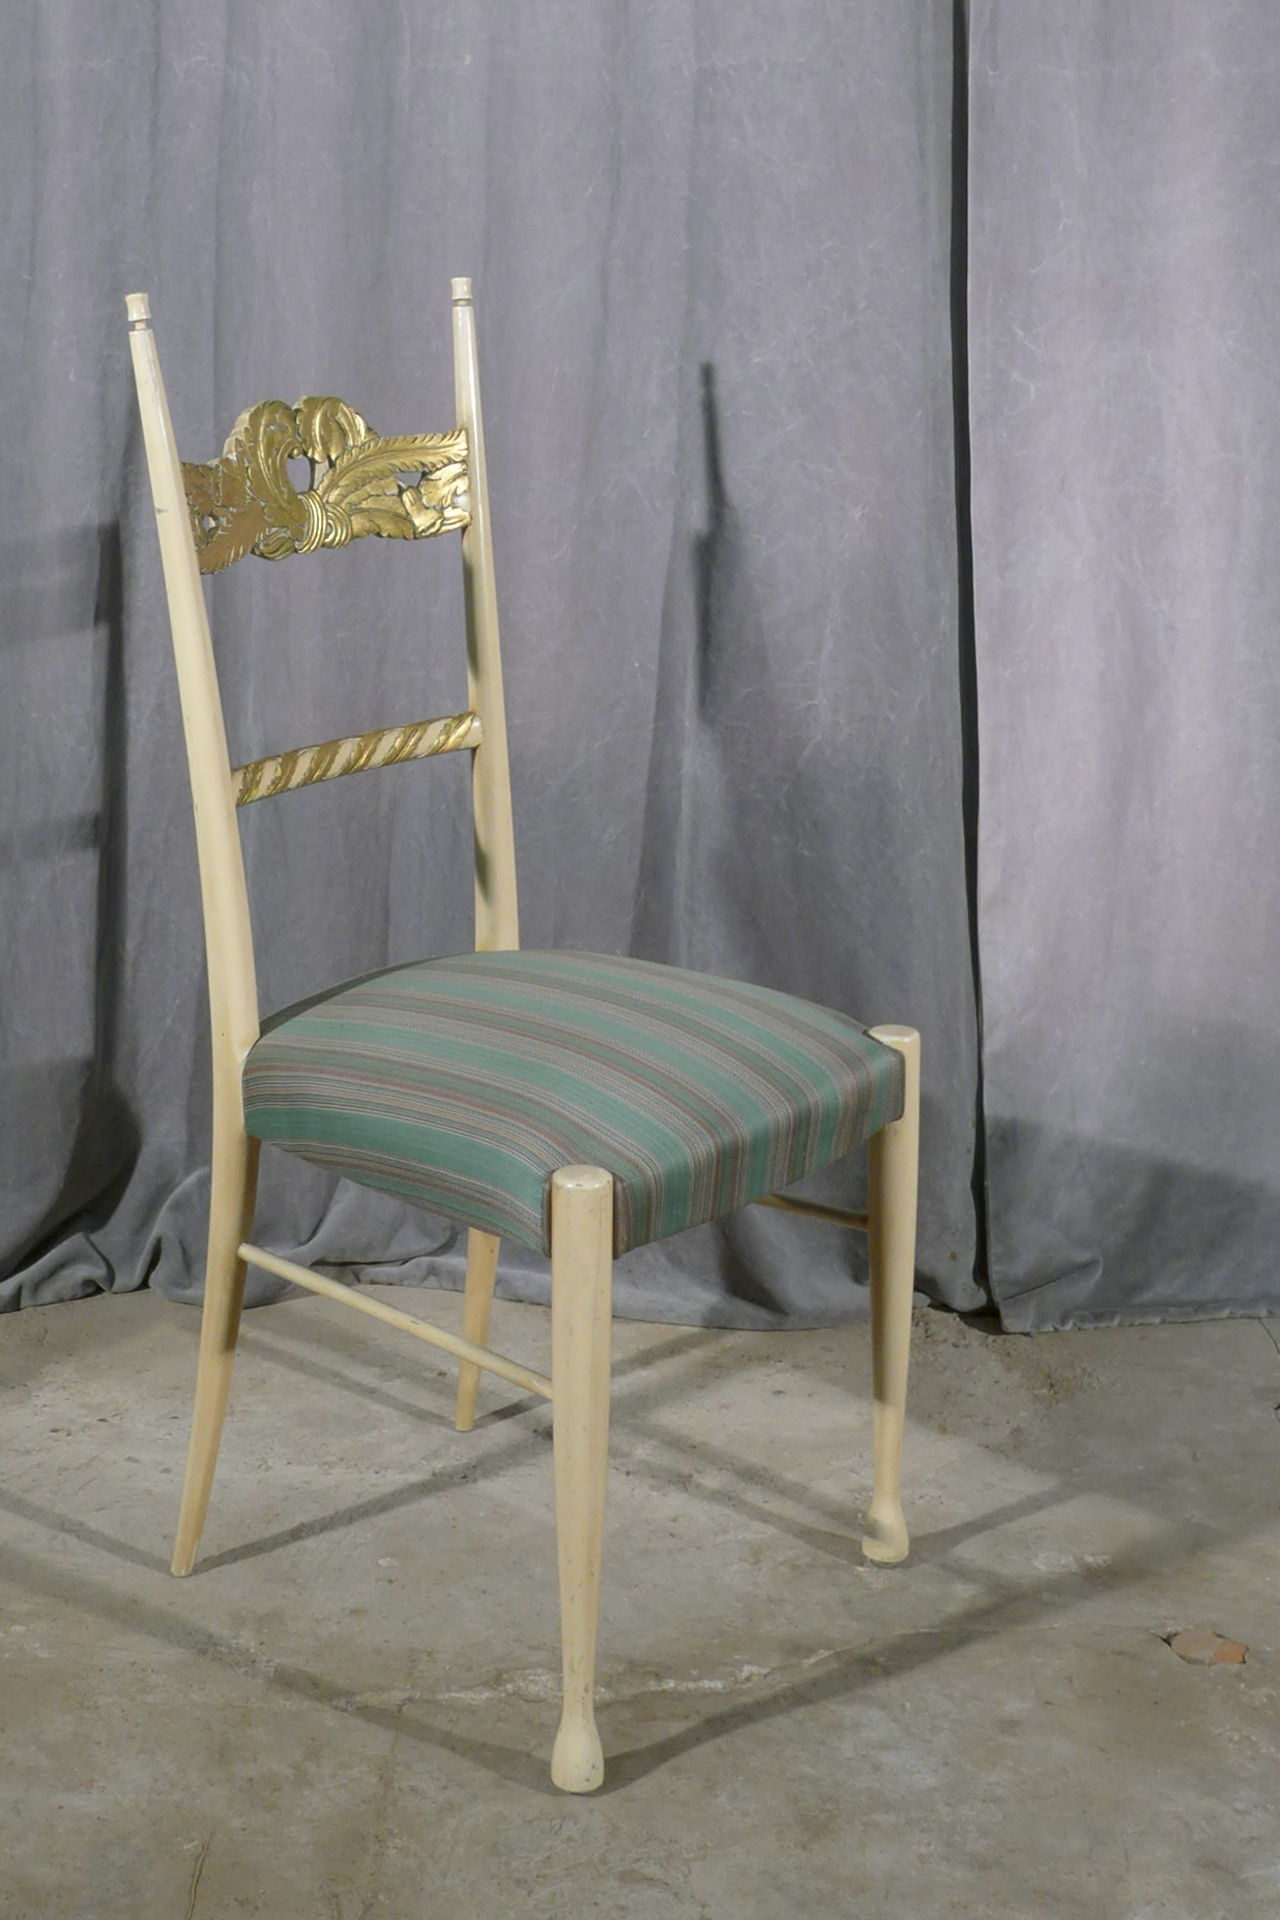 a set of four chairs by Paolo Buffa and Giovanni Gariboldi